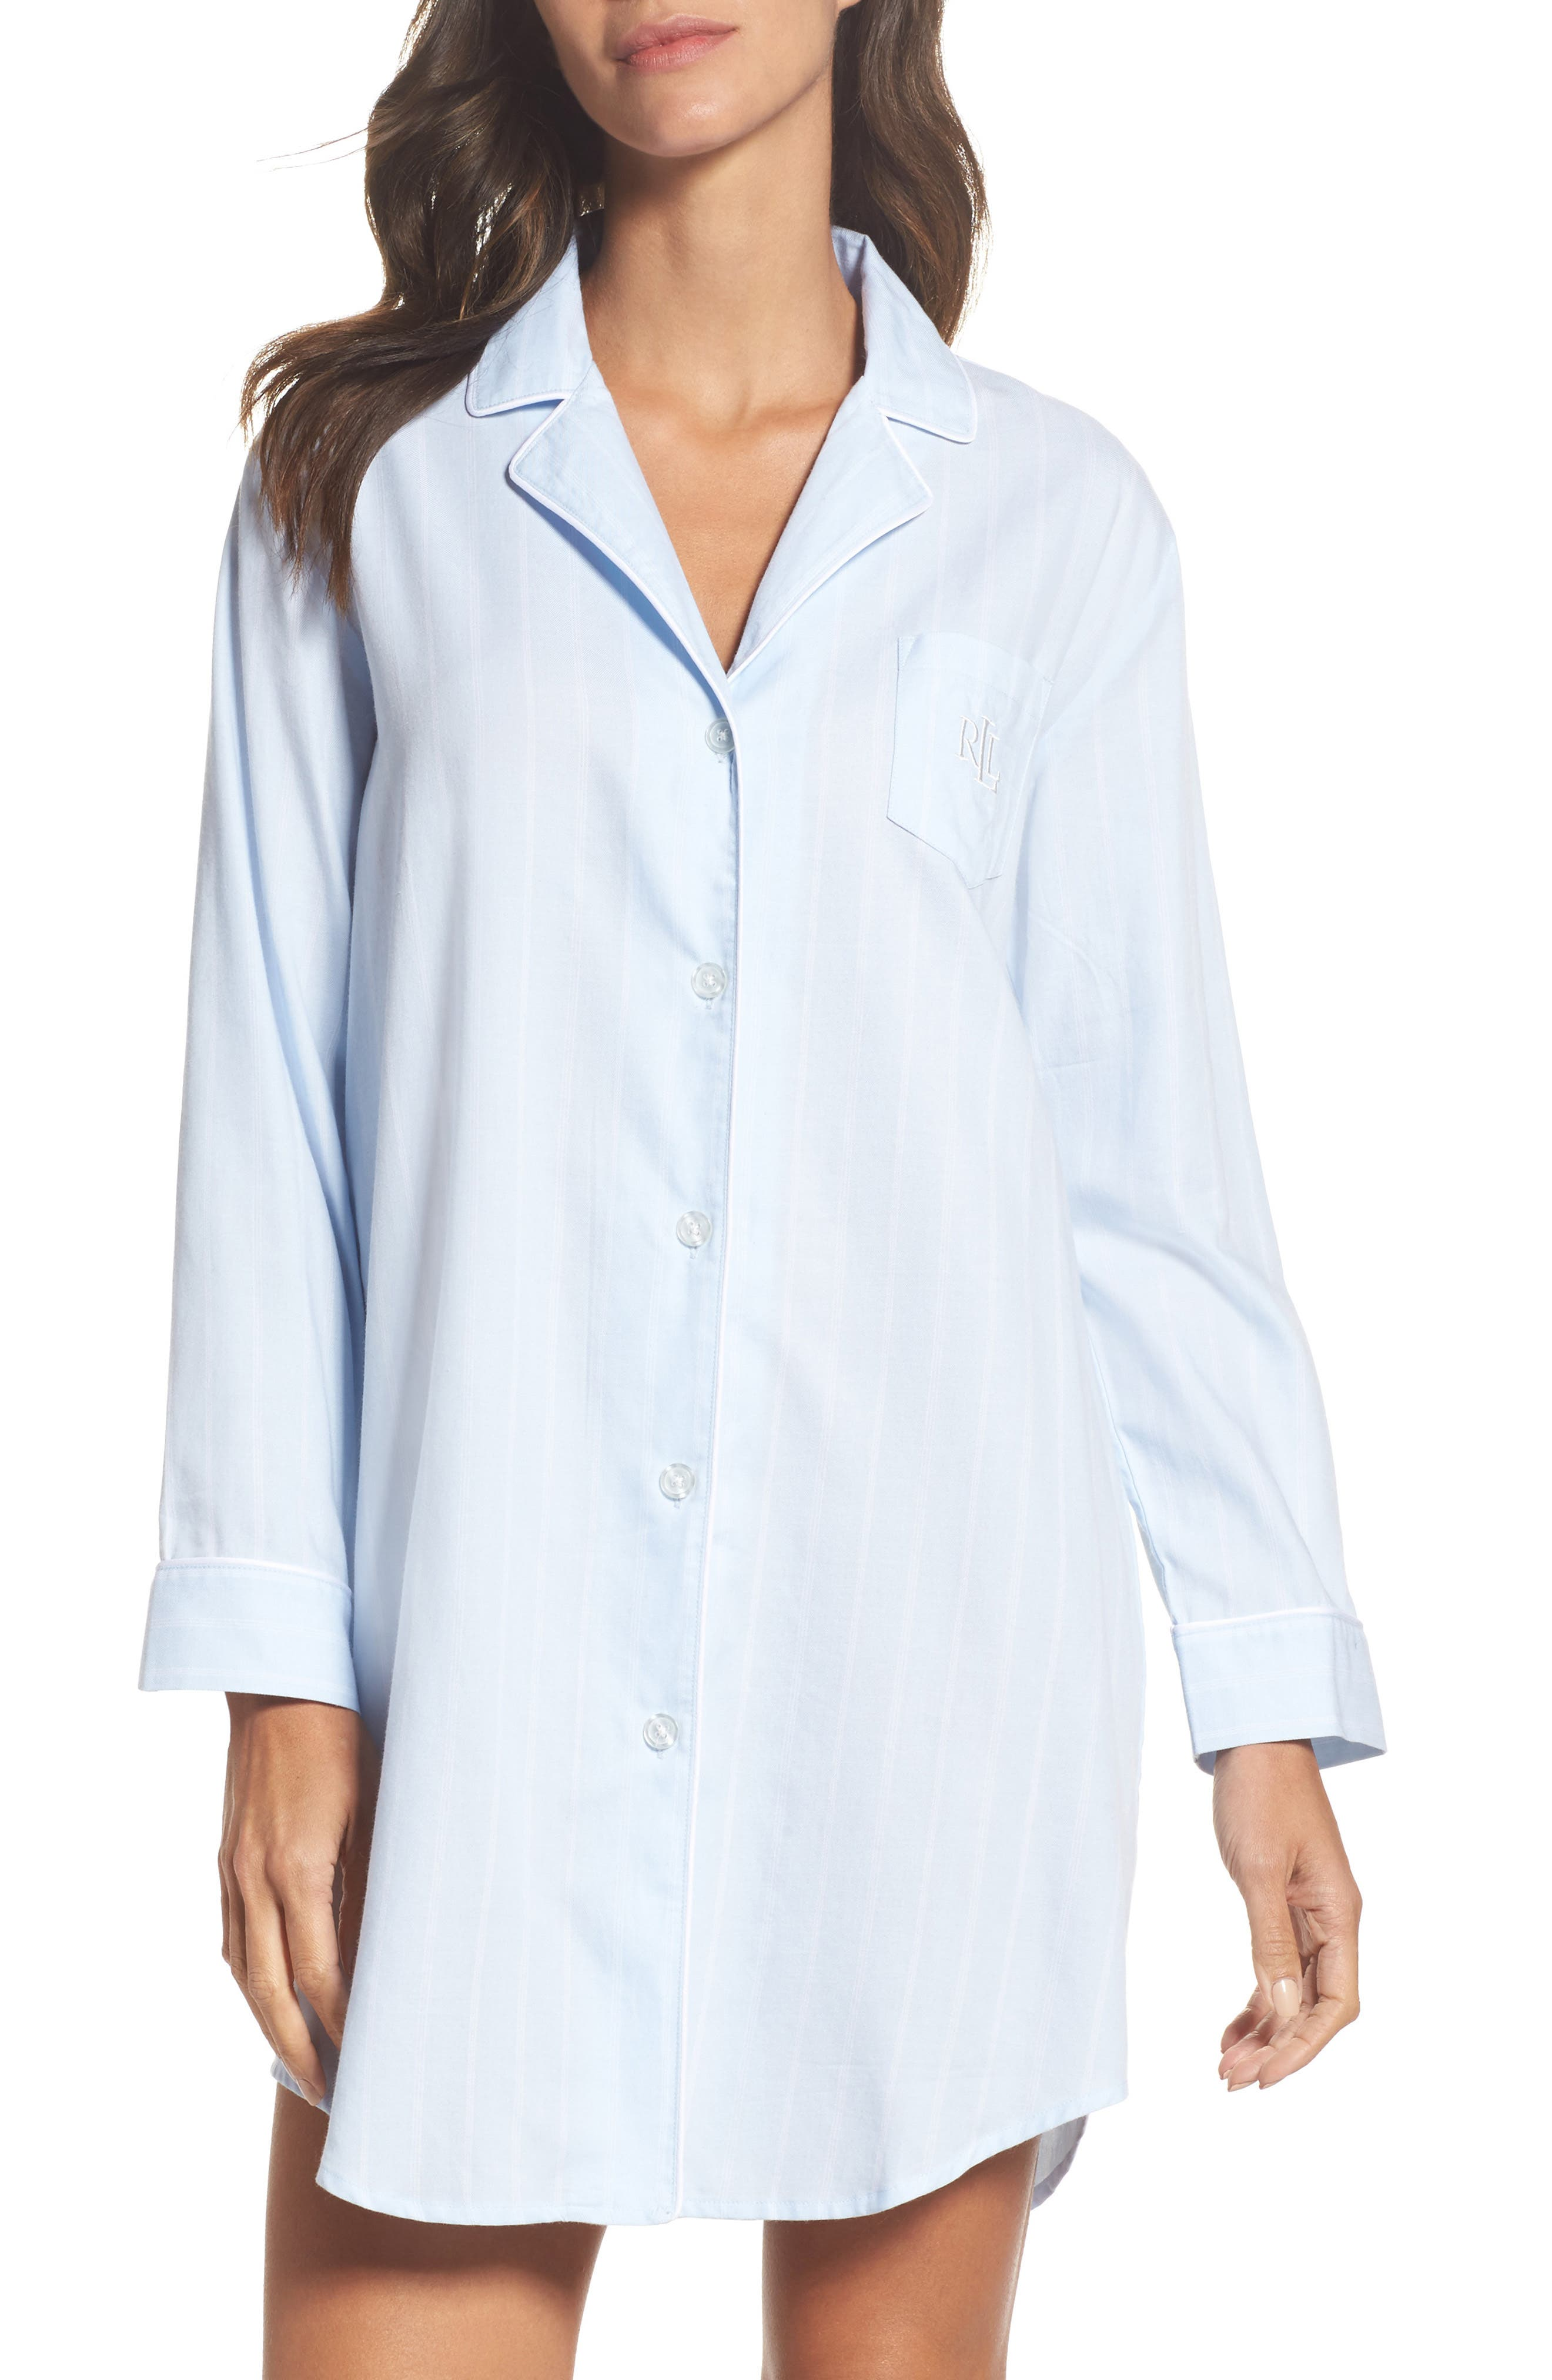 Lauren Ralph Lauren Notch Collar Sleep Shirt